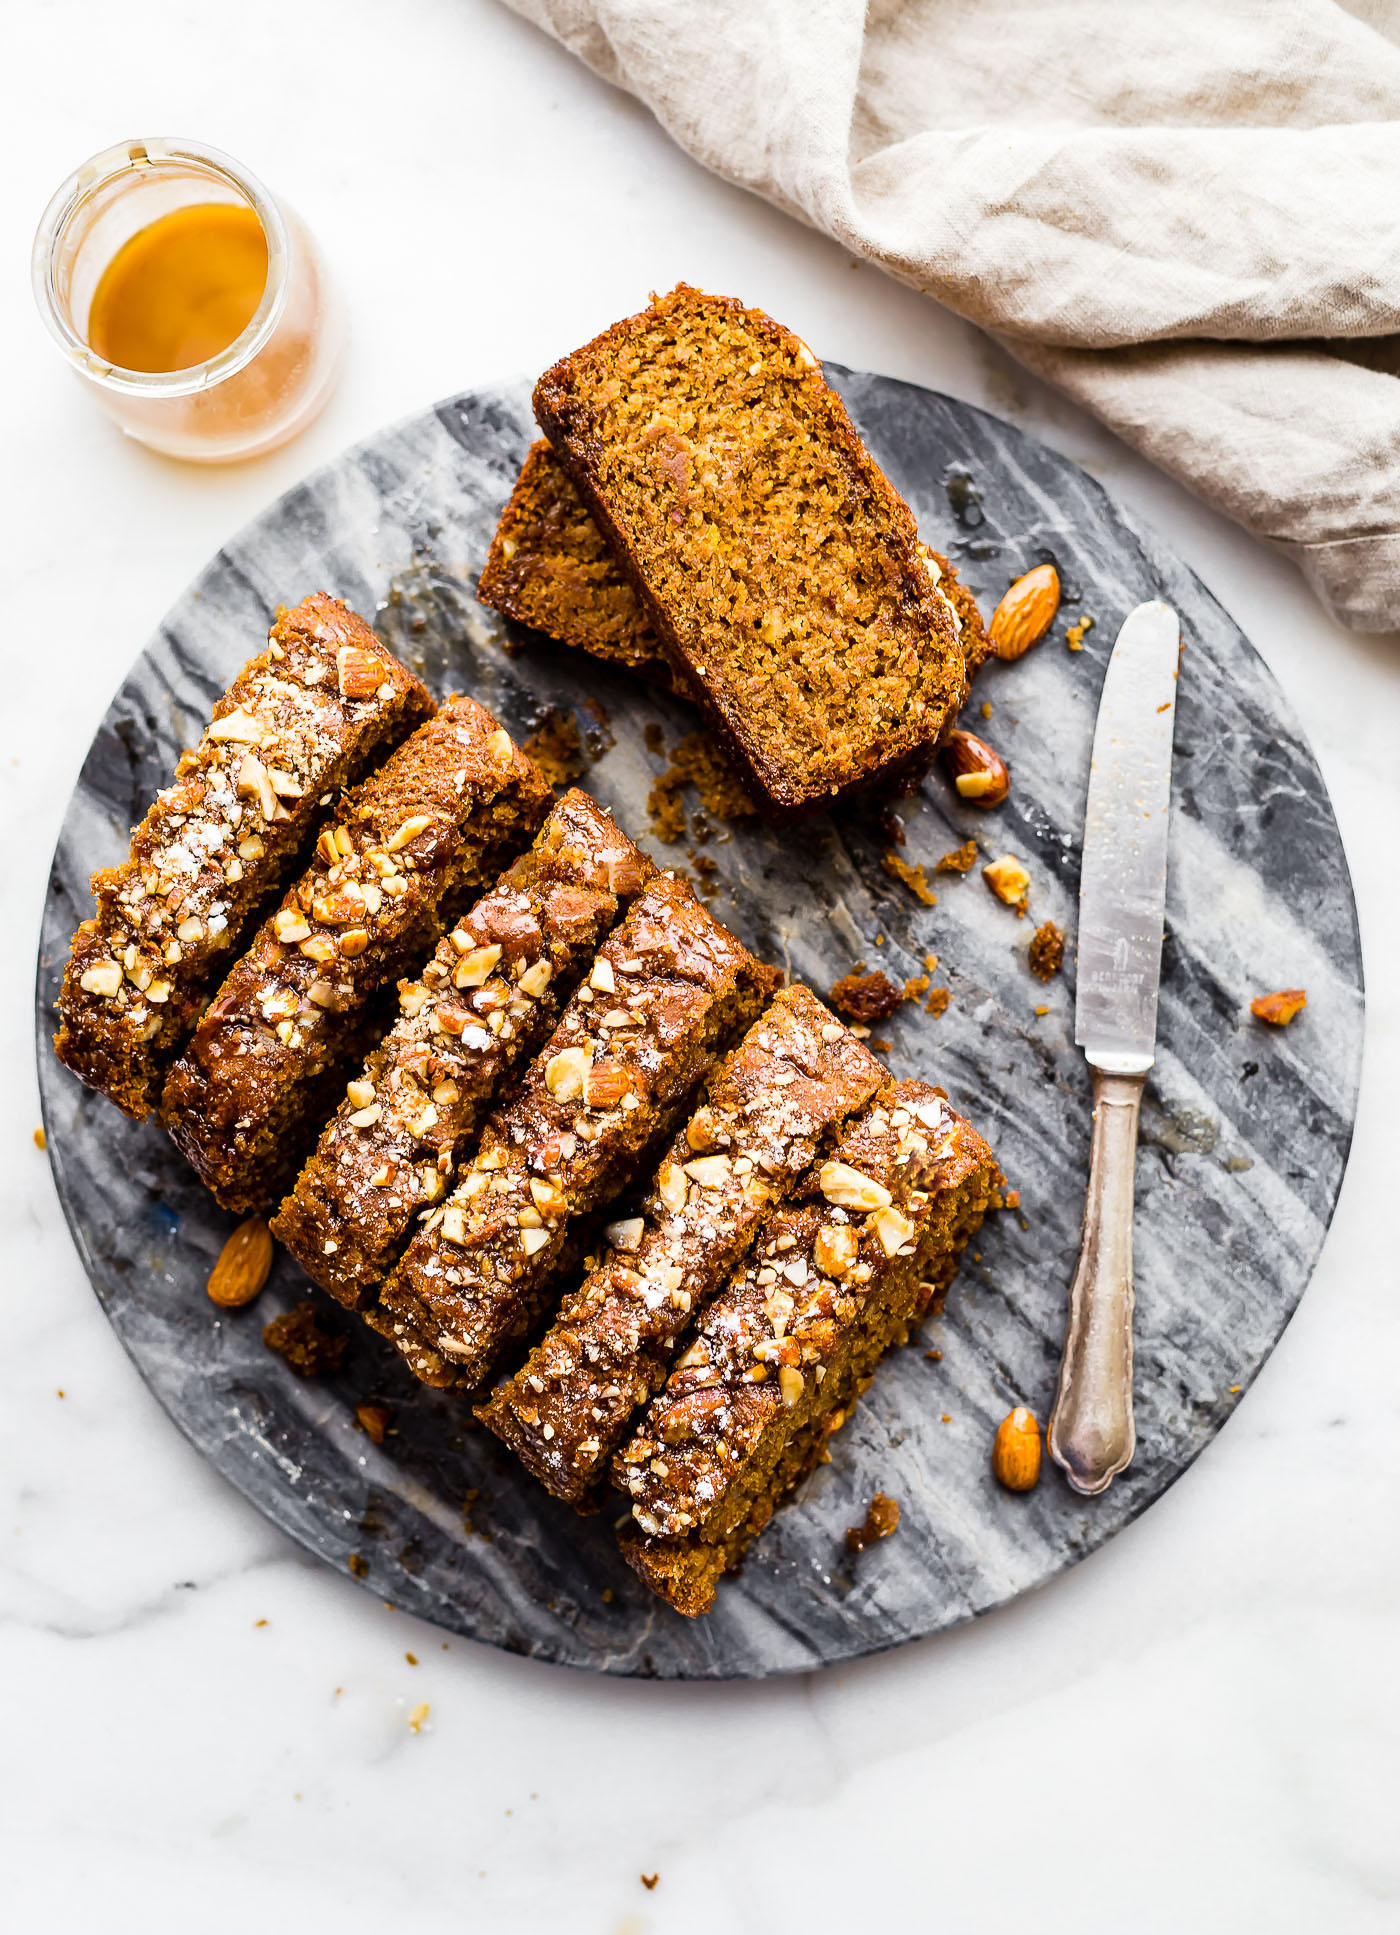 This Vegan Maple Almond Earl Grey Tea cake is lightly sweet and simple. A gluten free buttery tea cake loaf infused with Earl Grey tea and a hint cardamon! The maple almond glaze is the perfect topping. Quick to make in one pan and bakes up in under 45 minutes!